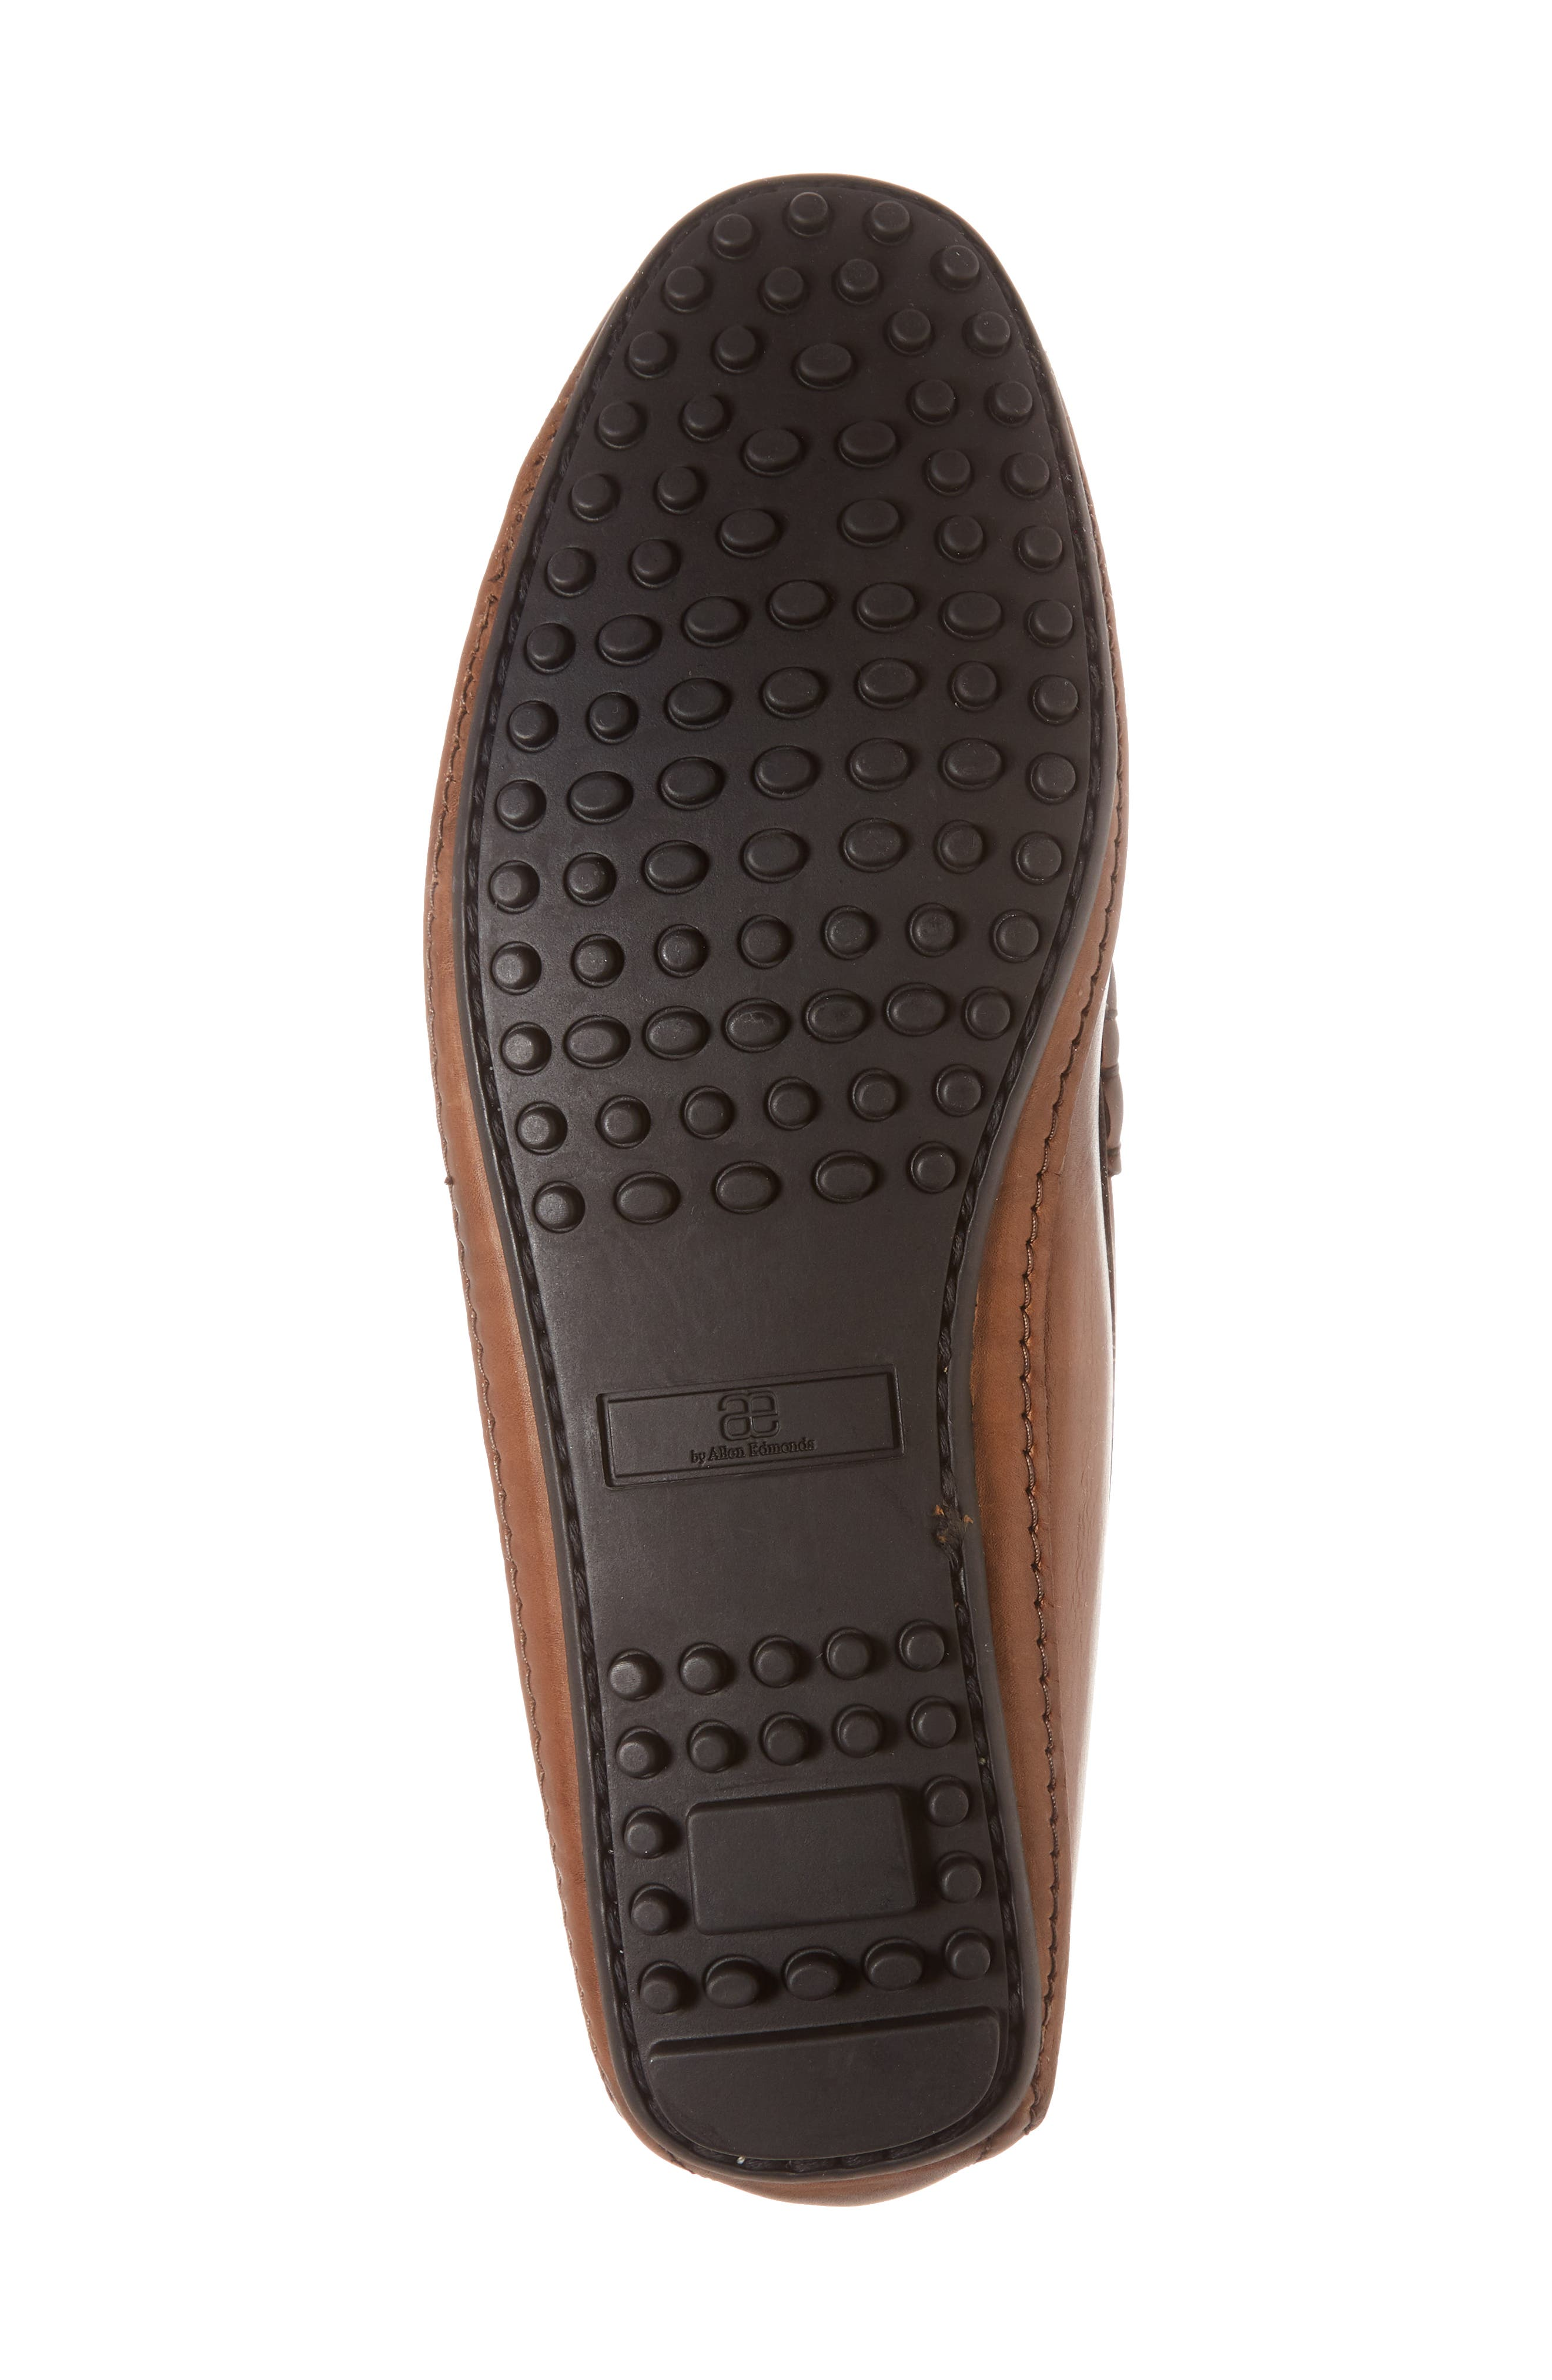 Siesta Key Penny Loafer,                             Alternate thumbnail 6, color,                             BROWN LEATHER